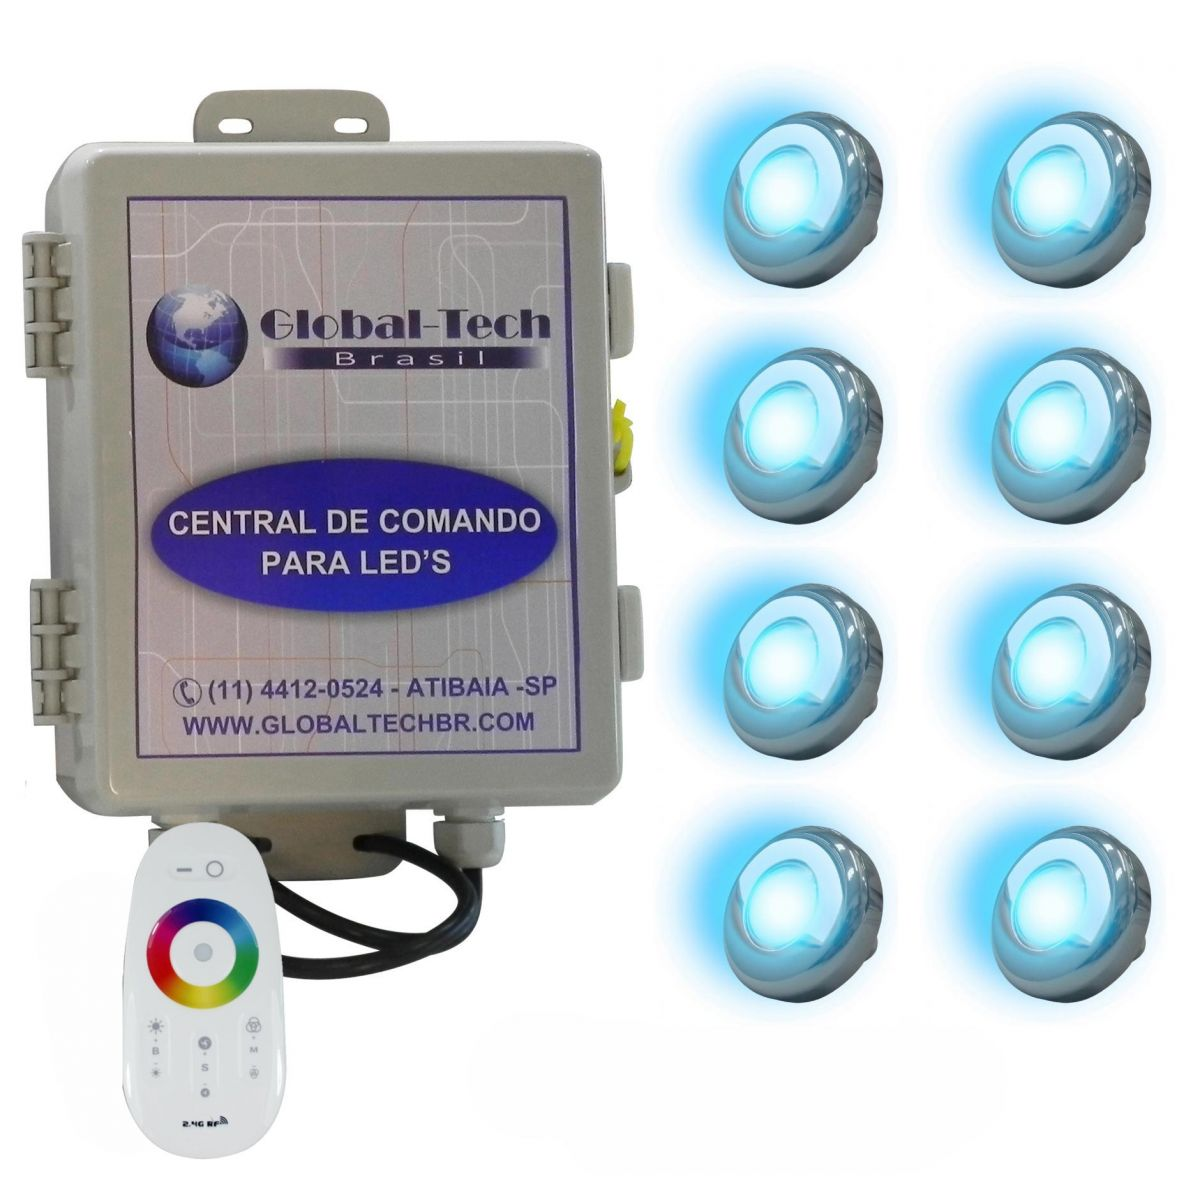 Led piscina kit 8 powerled inox rgb central controle for Led para piscinas